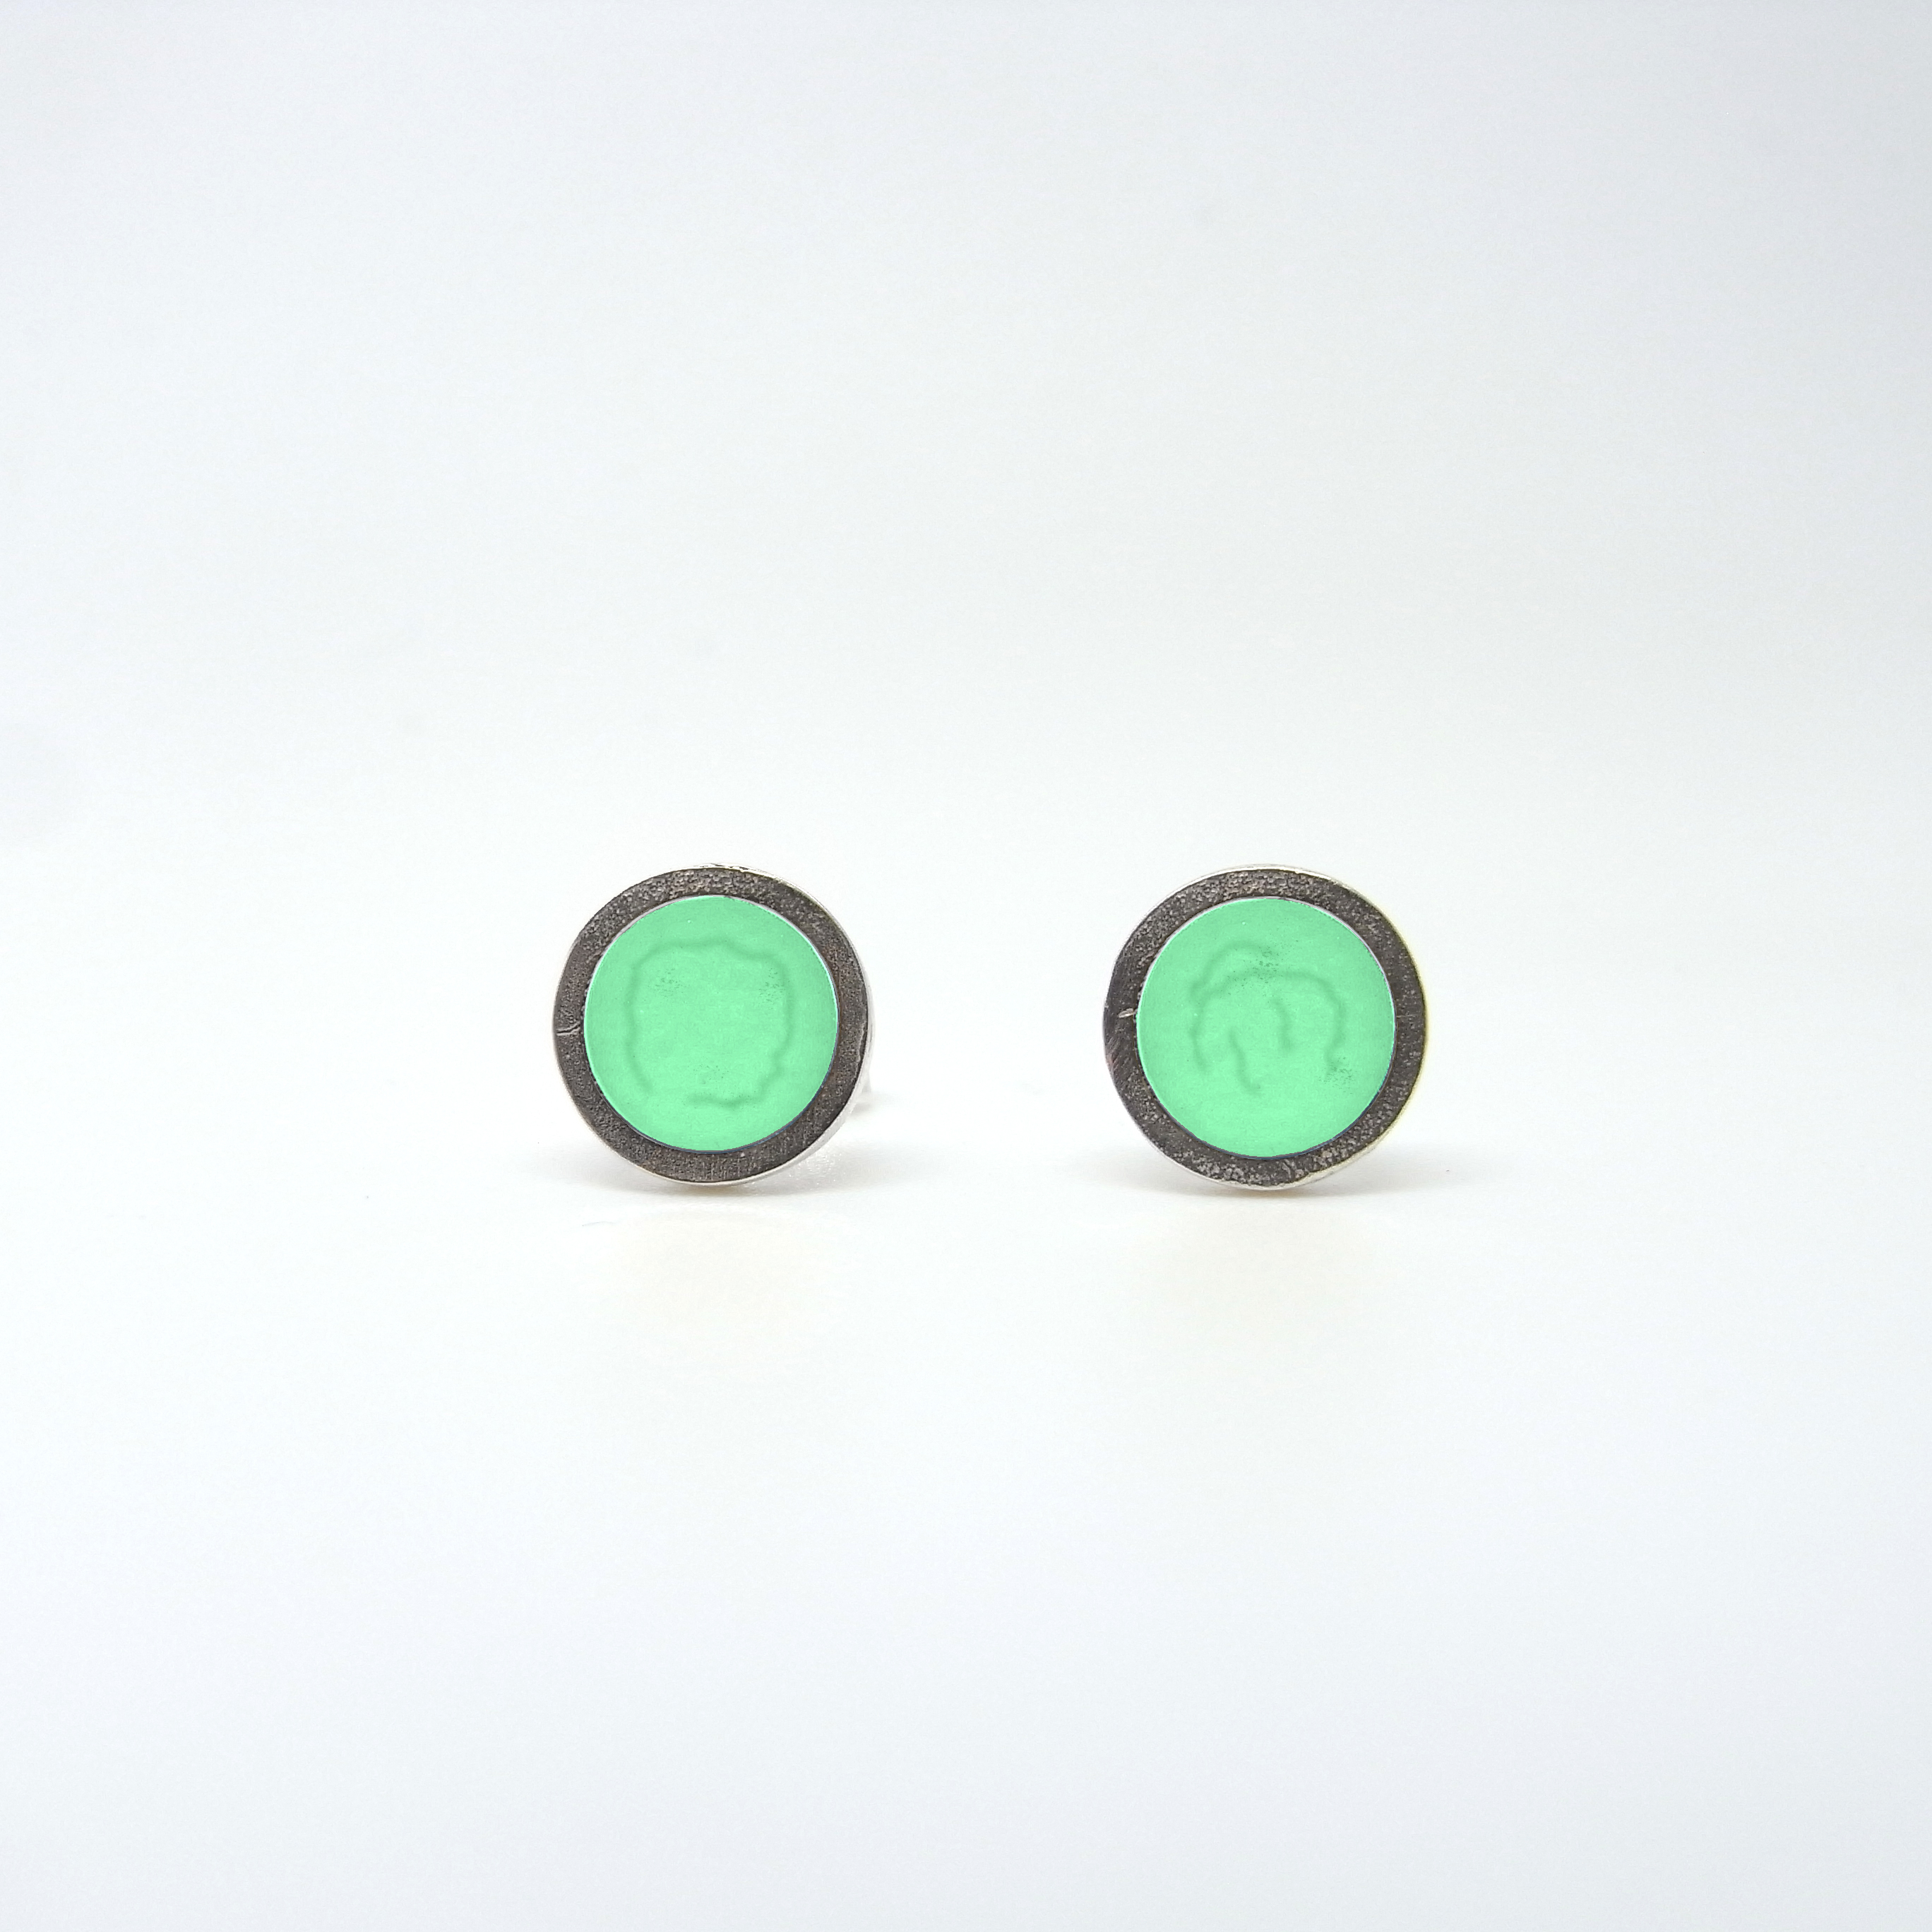 SALE - Small Coloured Dot Studs Bright Green